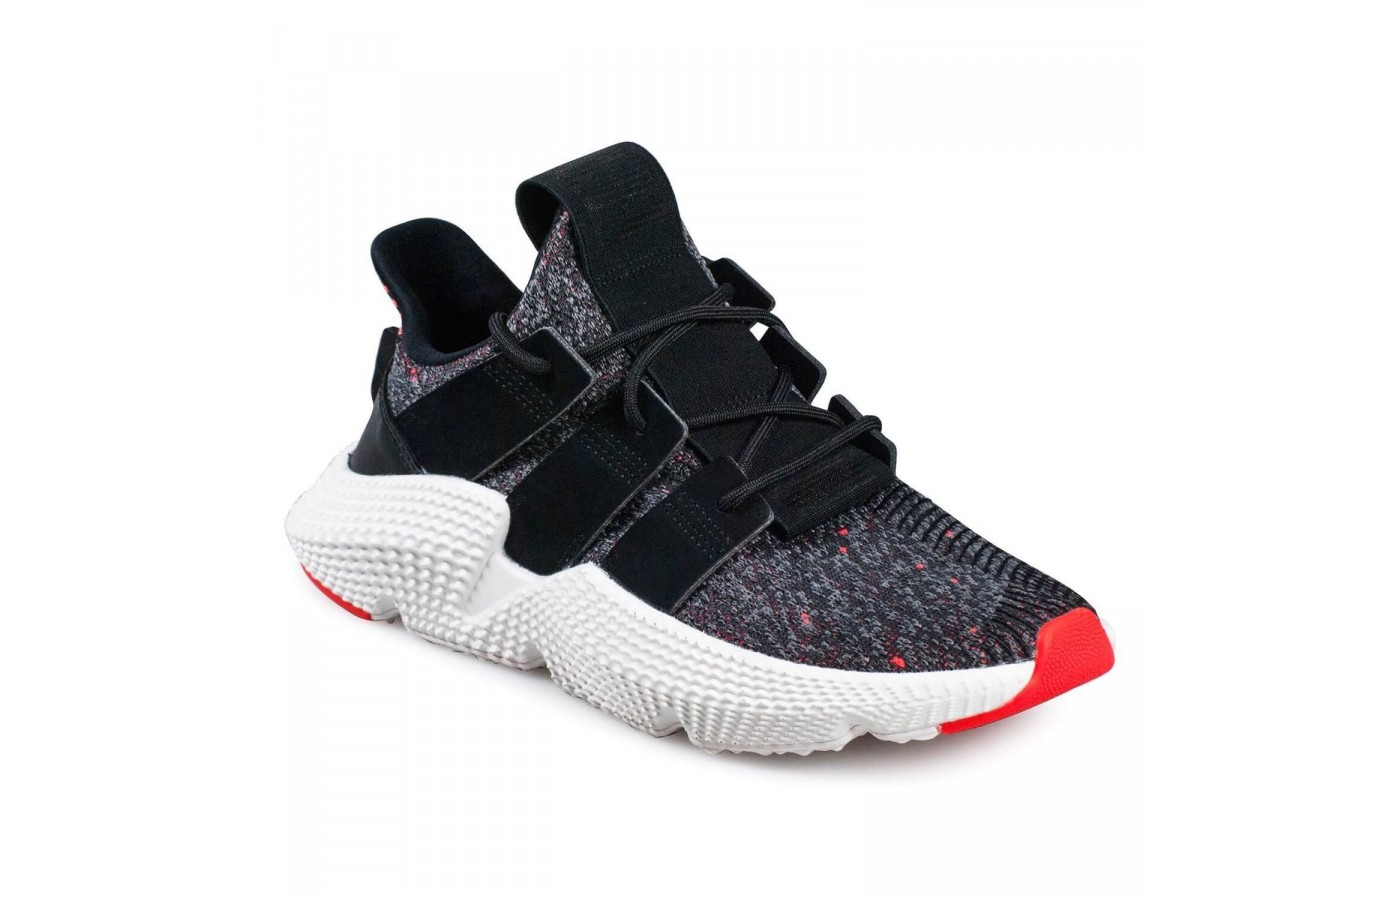 a8bee3ad08d36 The Adidas Prophere includes an Ortholite sockliner ...